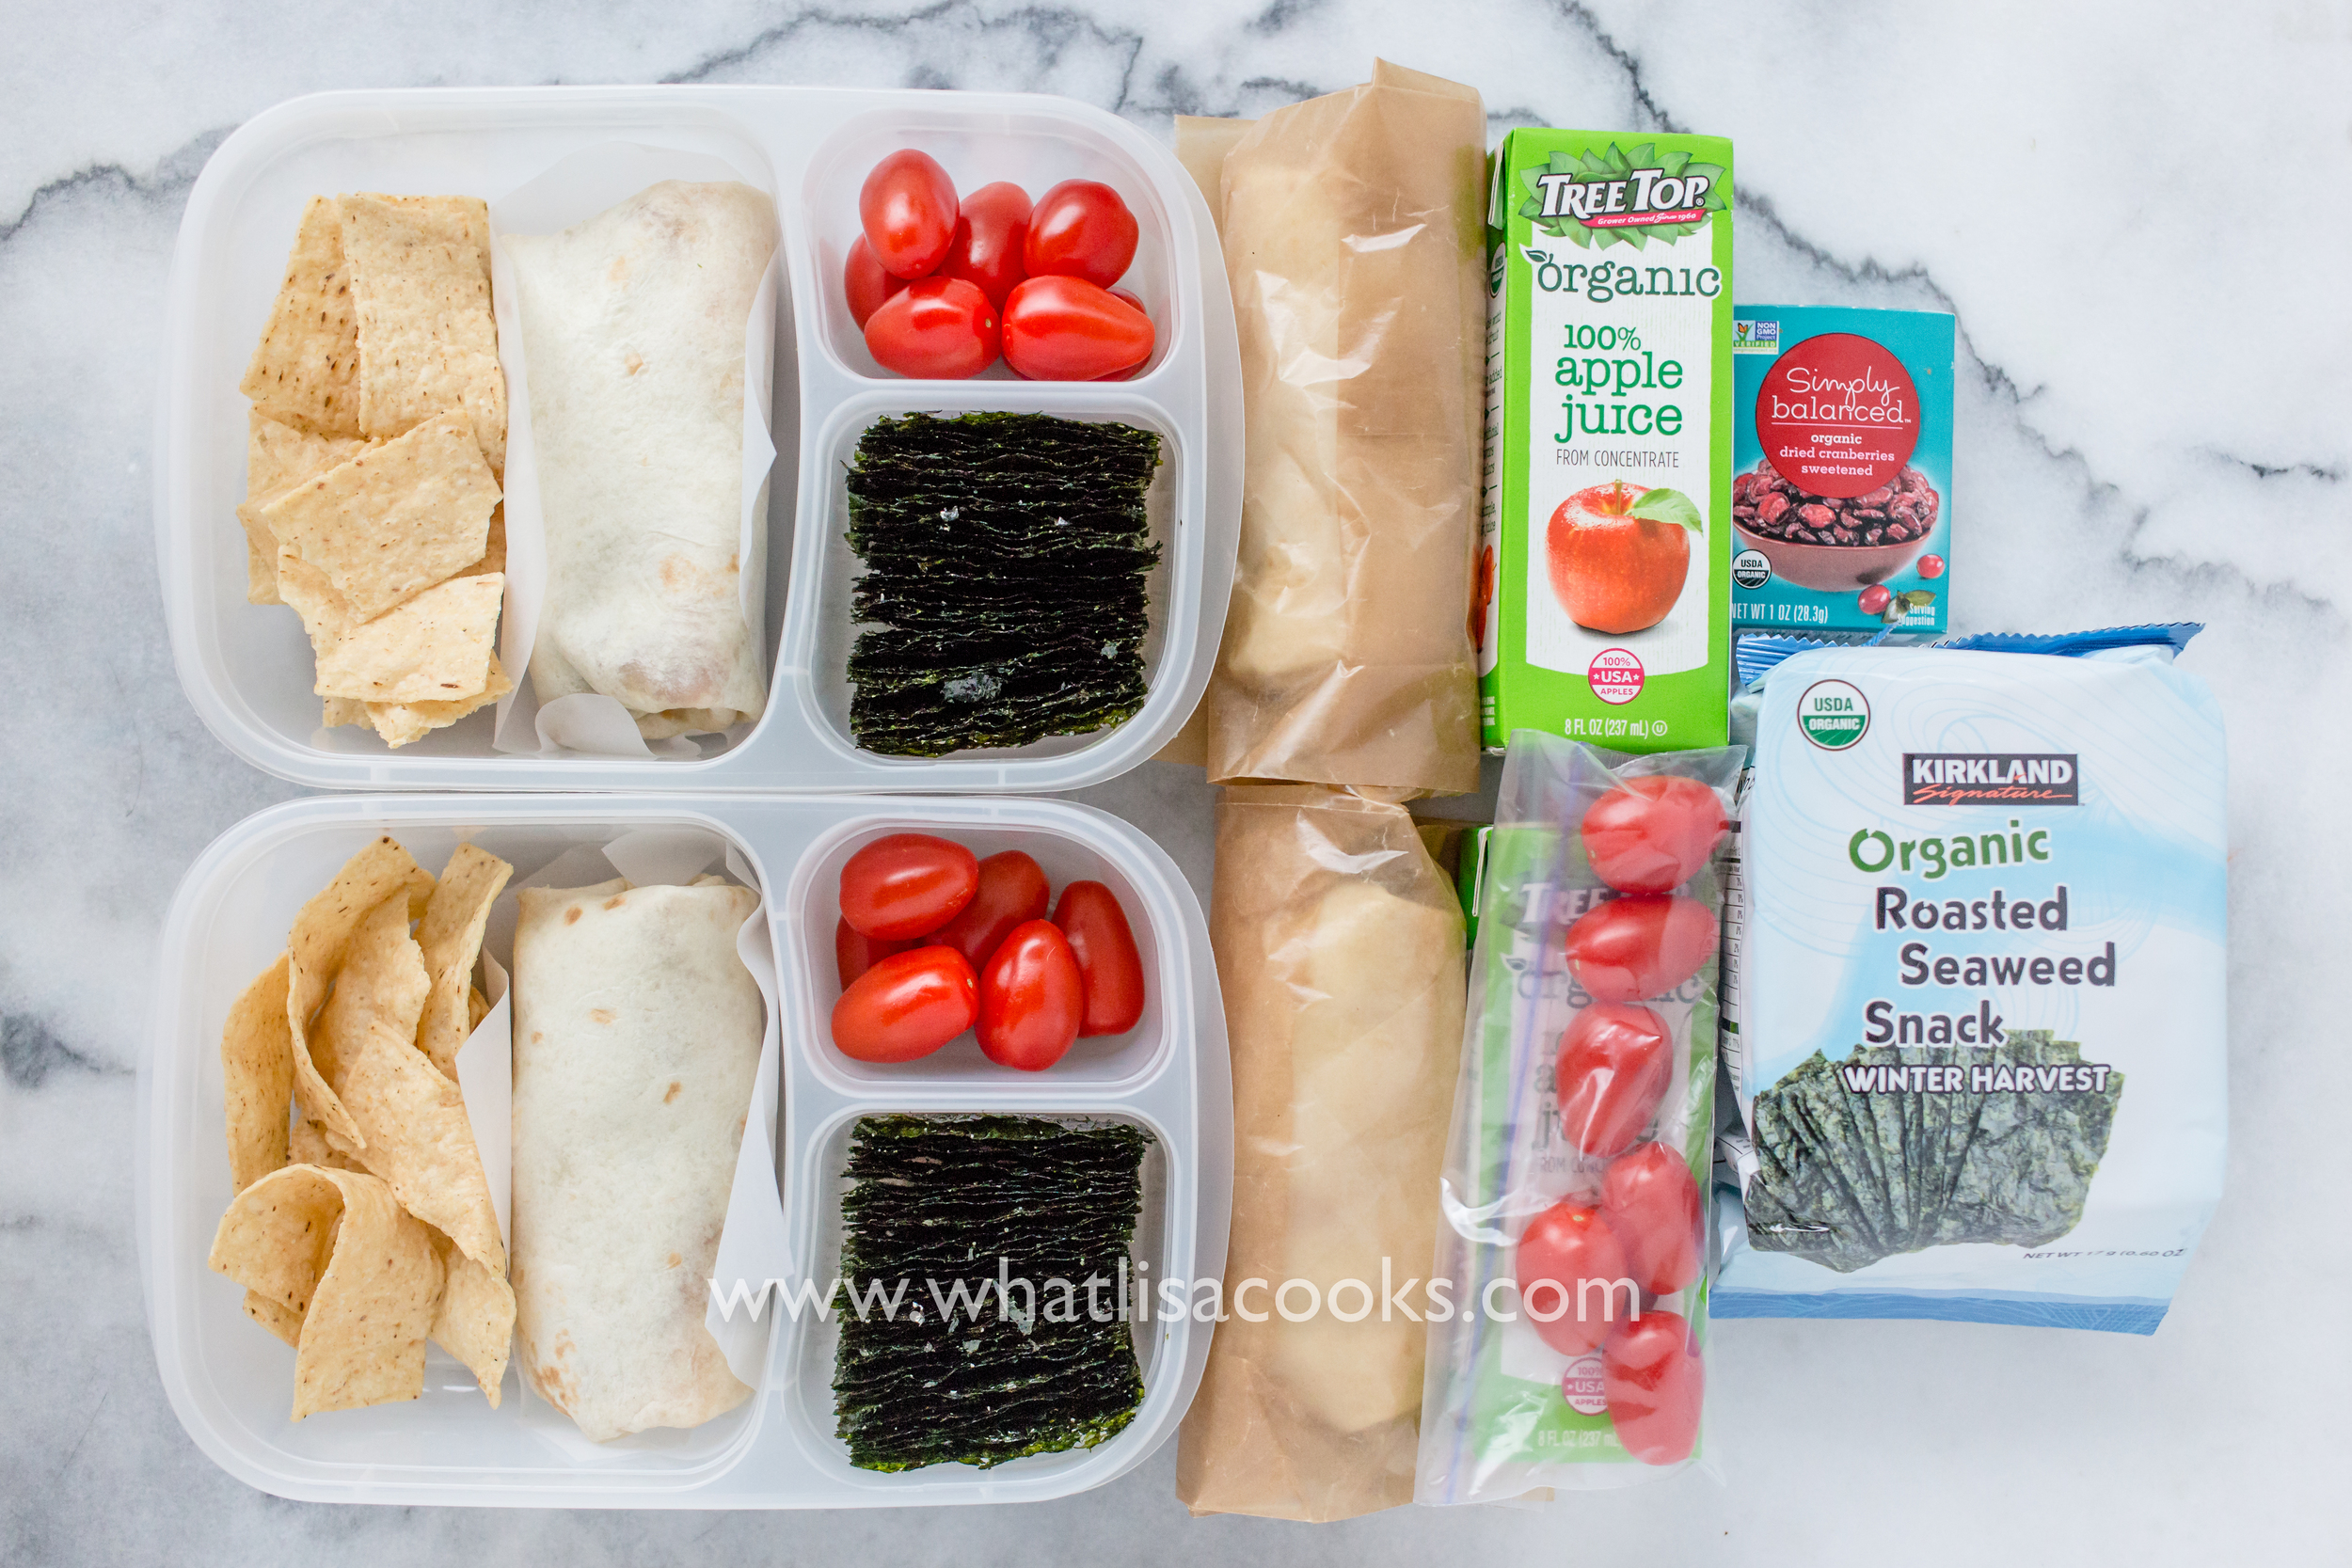 School lunch for a field trip | WhatLisaCooks.com